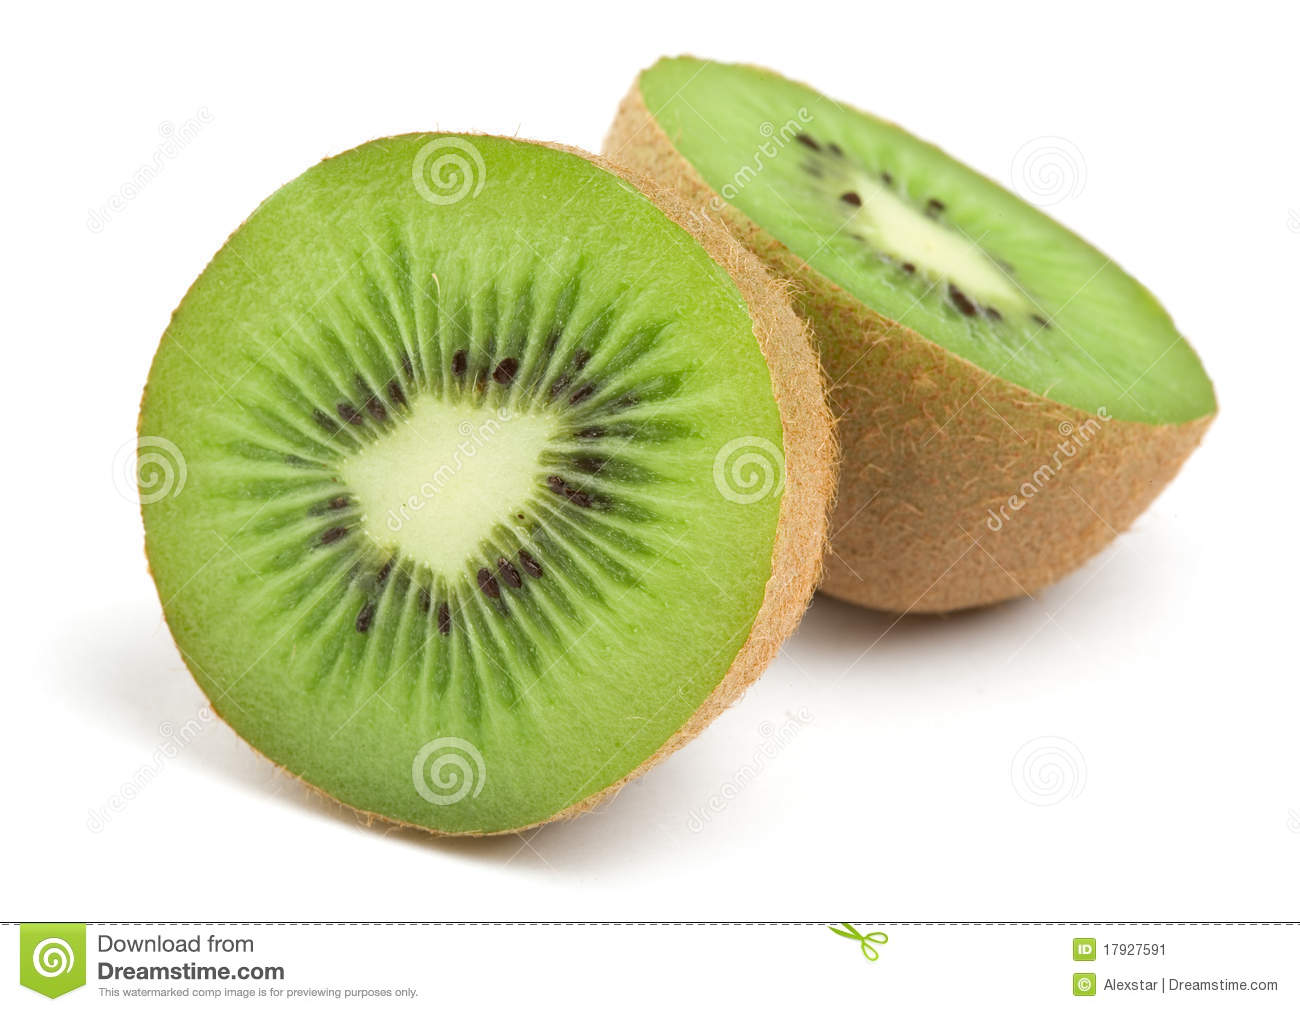 Kiwi bird cut in half - photo#12